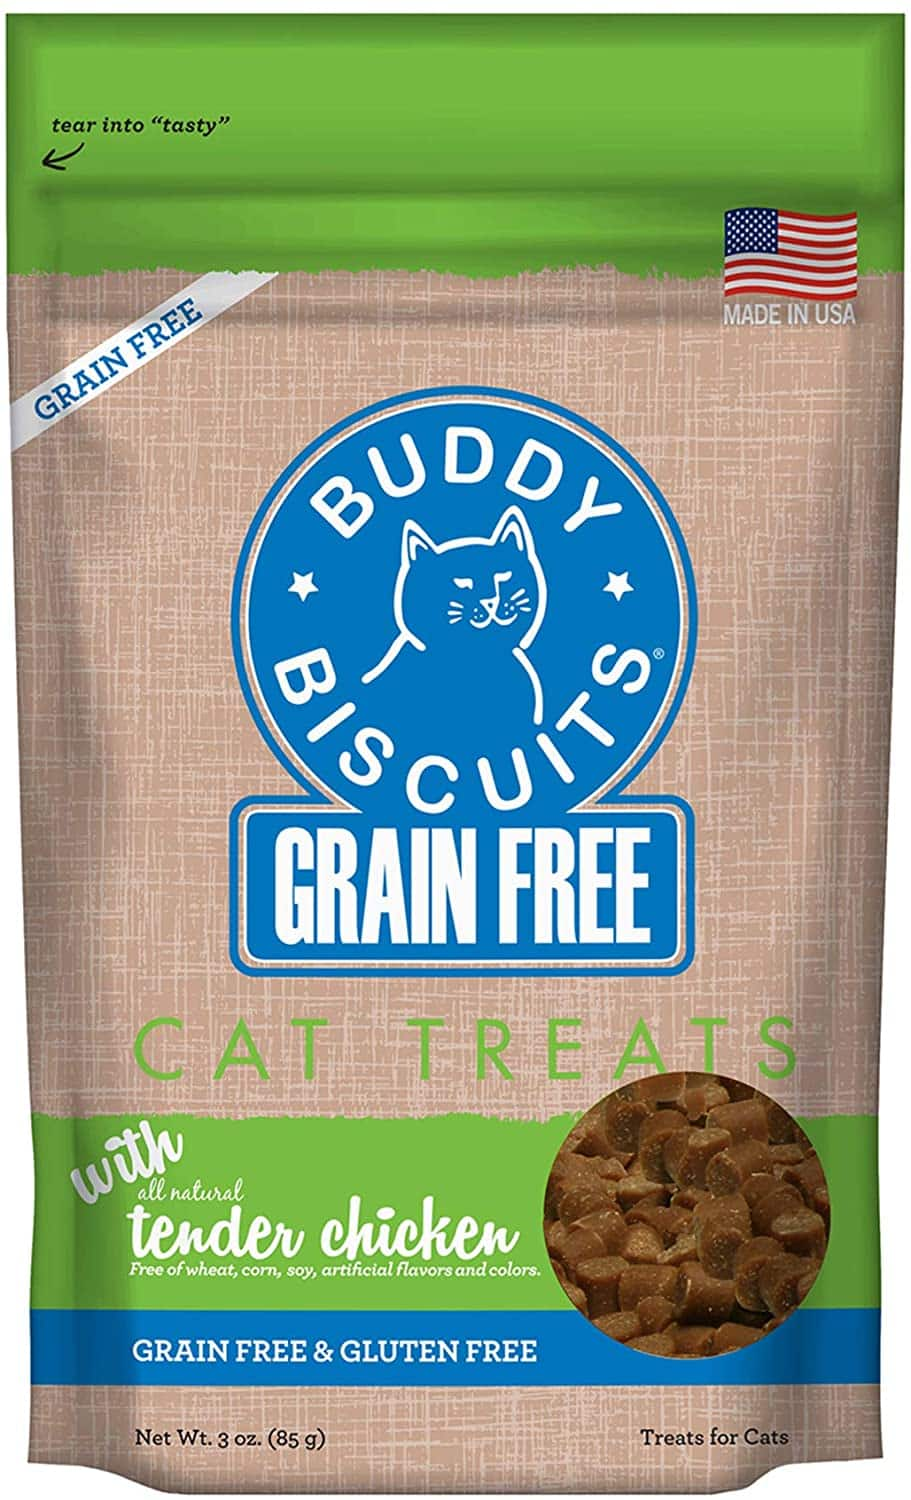 3 pack (3 oz), Buddy Biscuits Grain Free Cat Treats, Tender Chicken, $3.94 with S&S, Amazon + more